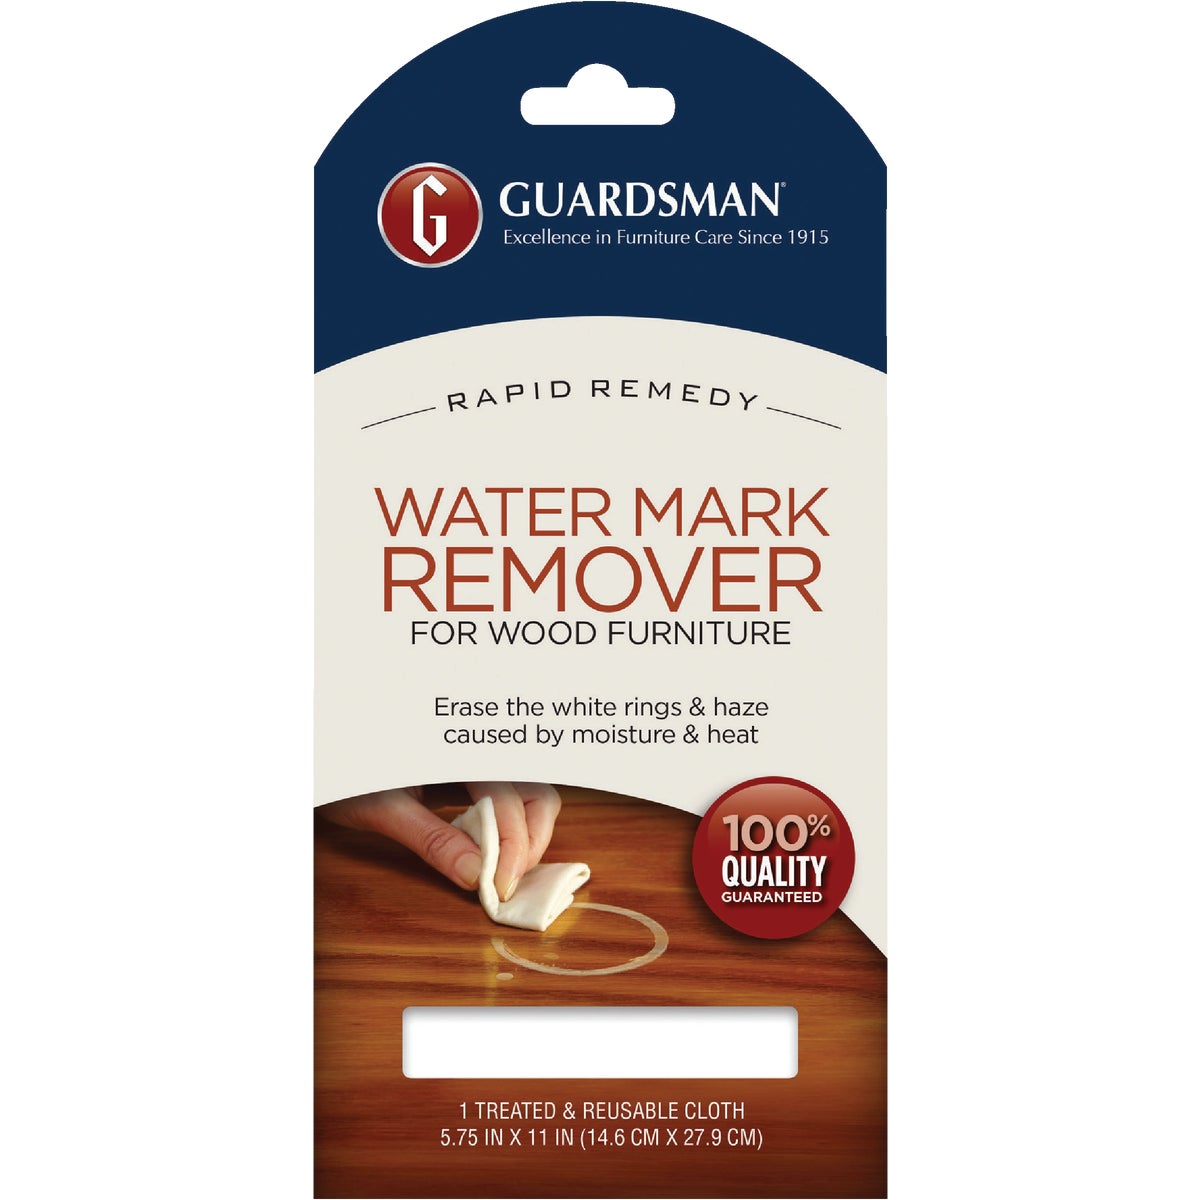 WATER MARK REMOVER CLOTH - 405200 by Valspar  Guardsman